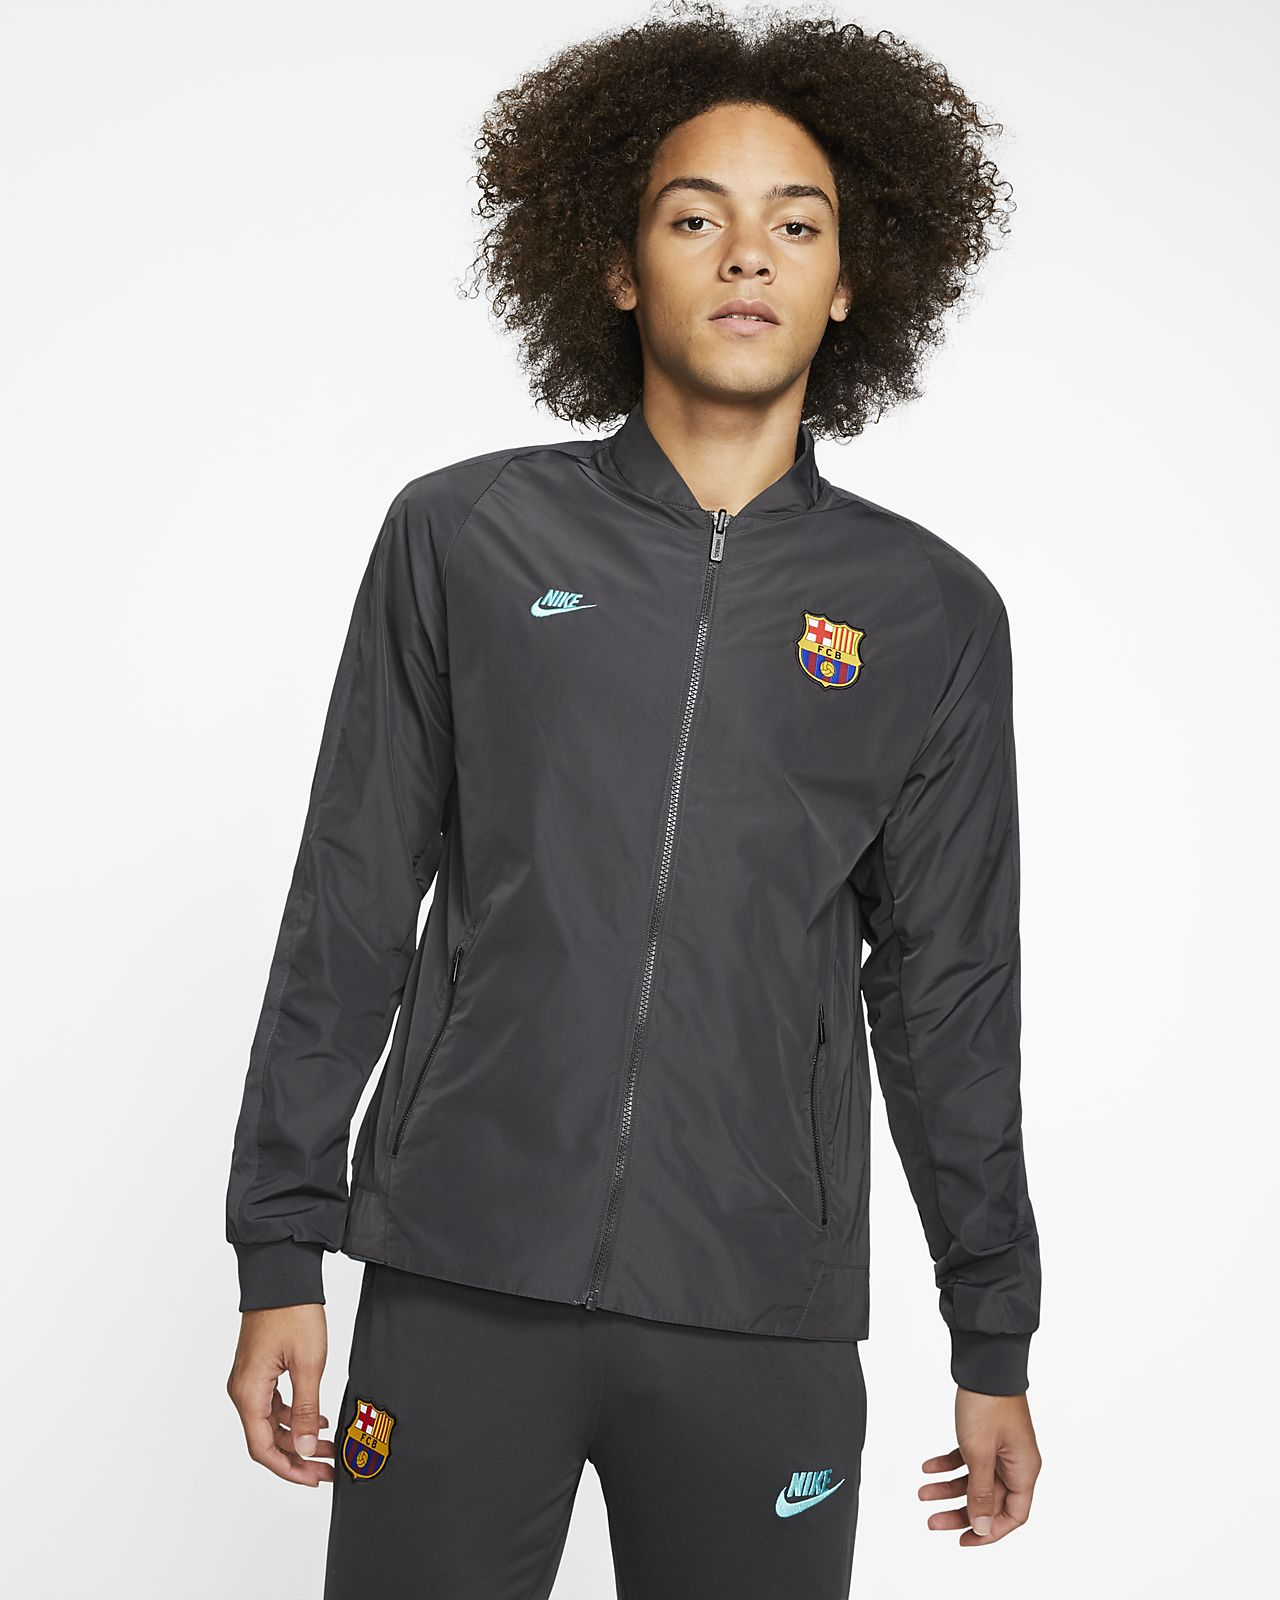 F.C. Barcelona Men's Reversible Jacket